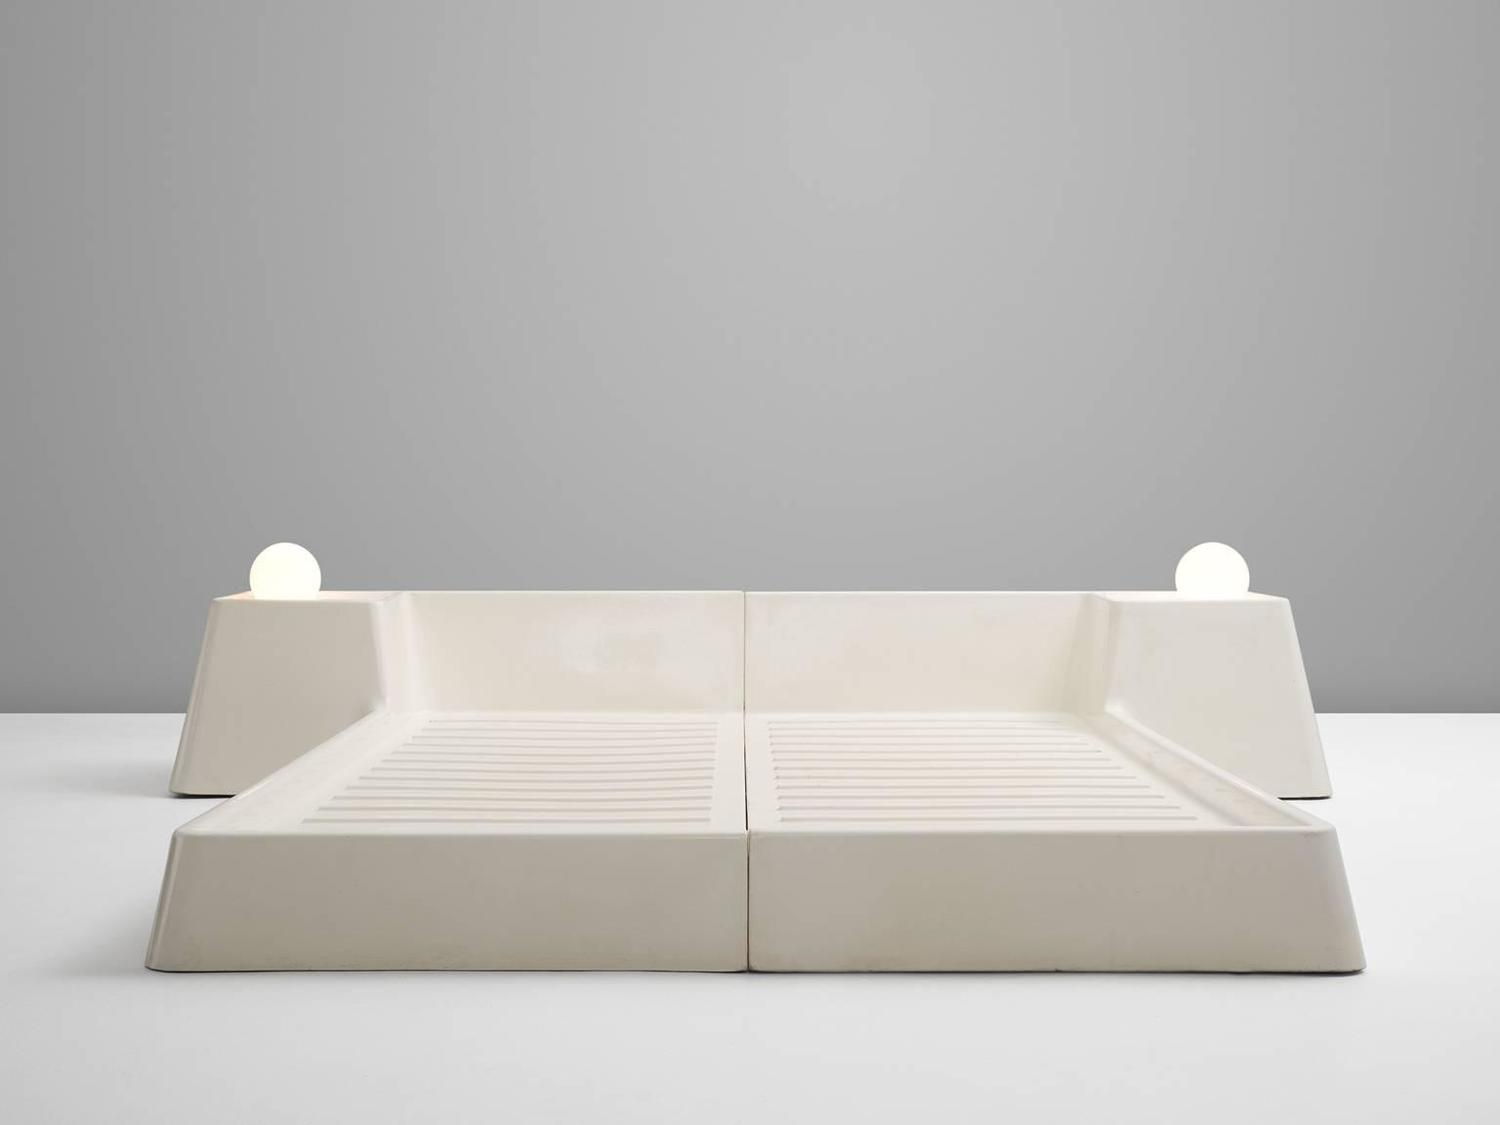 futuristic bed frame by marc held for prisunic for sale at